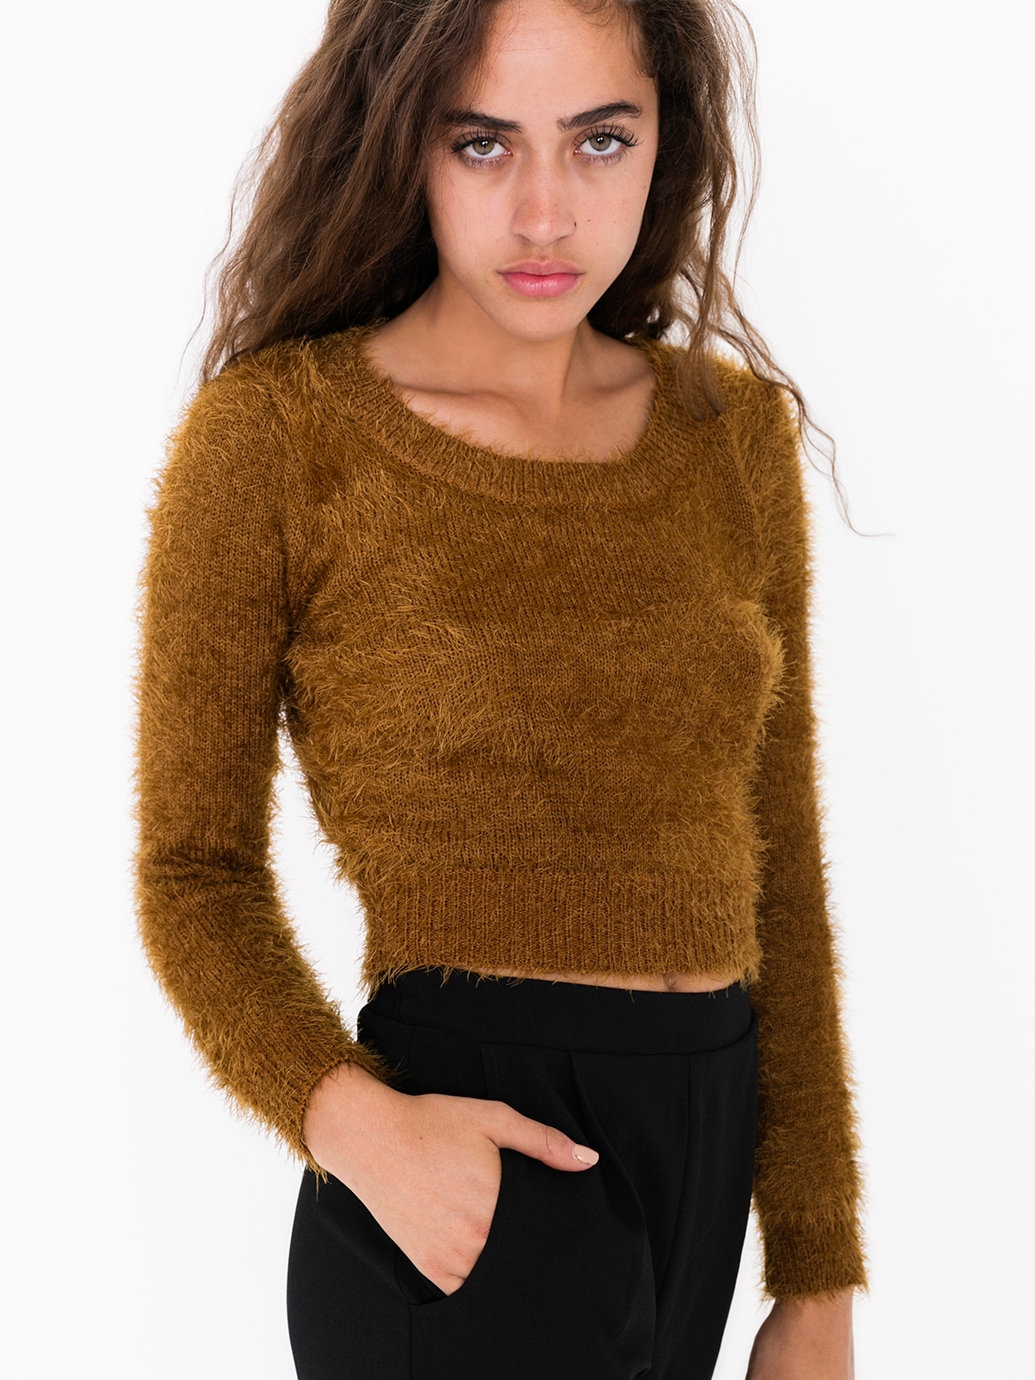 Cropped Fuzzy Sweater